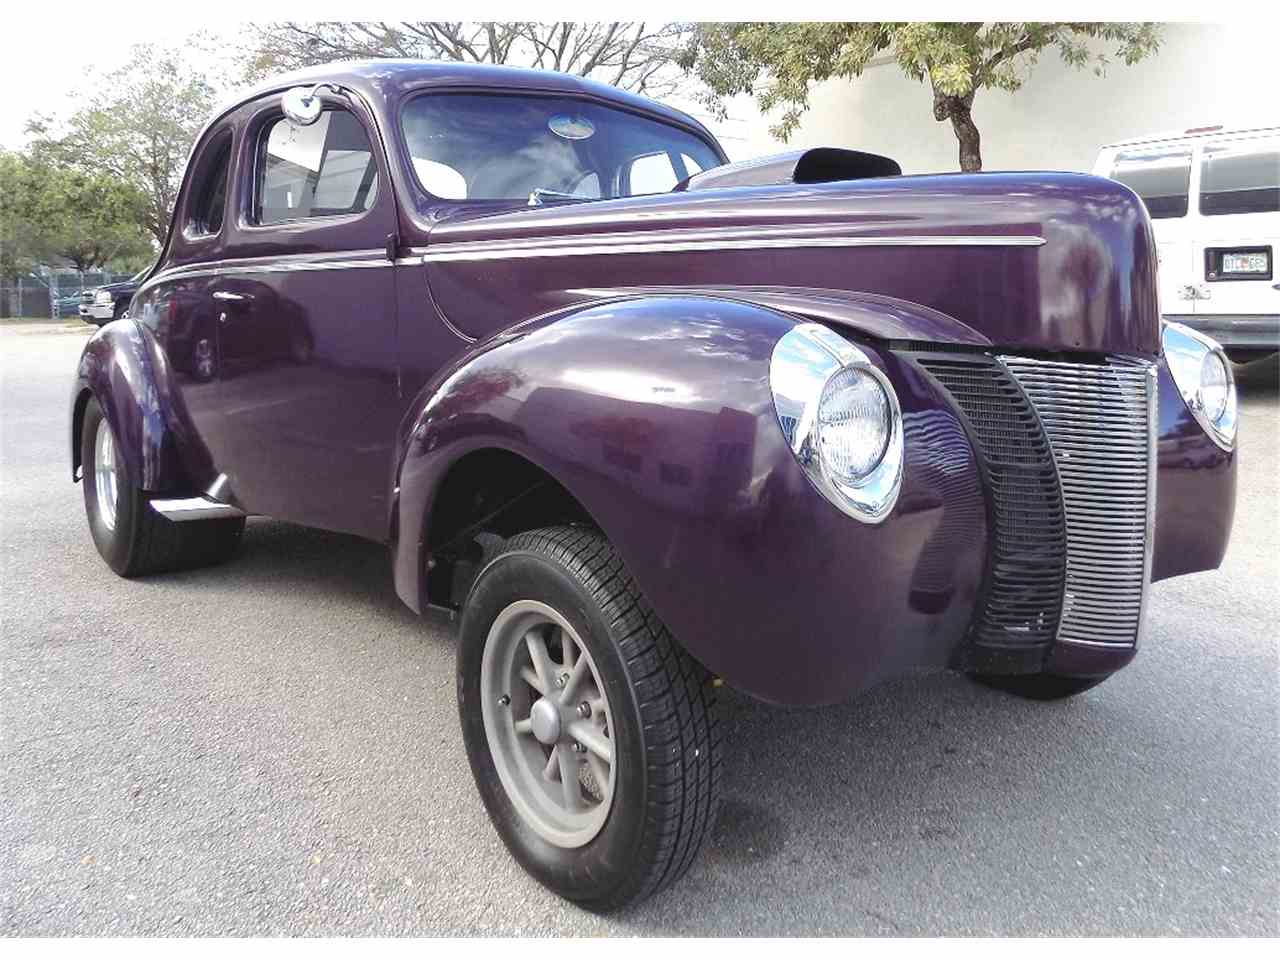 Ford Deluxe For Sale ClassicCarscom CC - Pompano classic cars